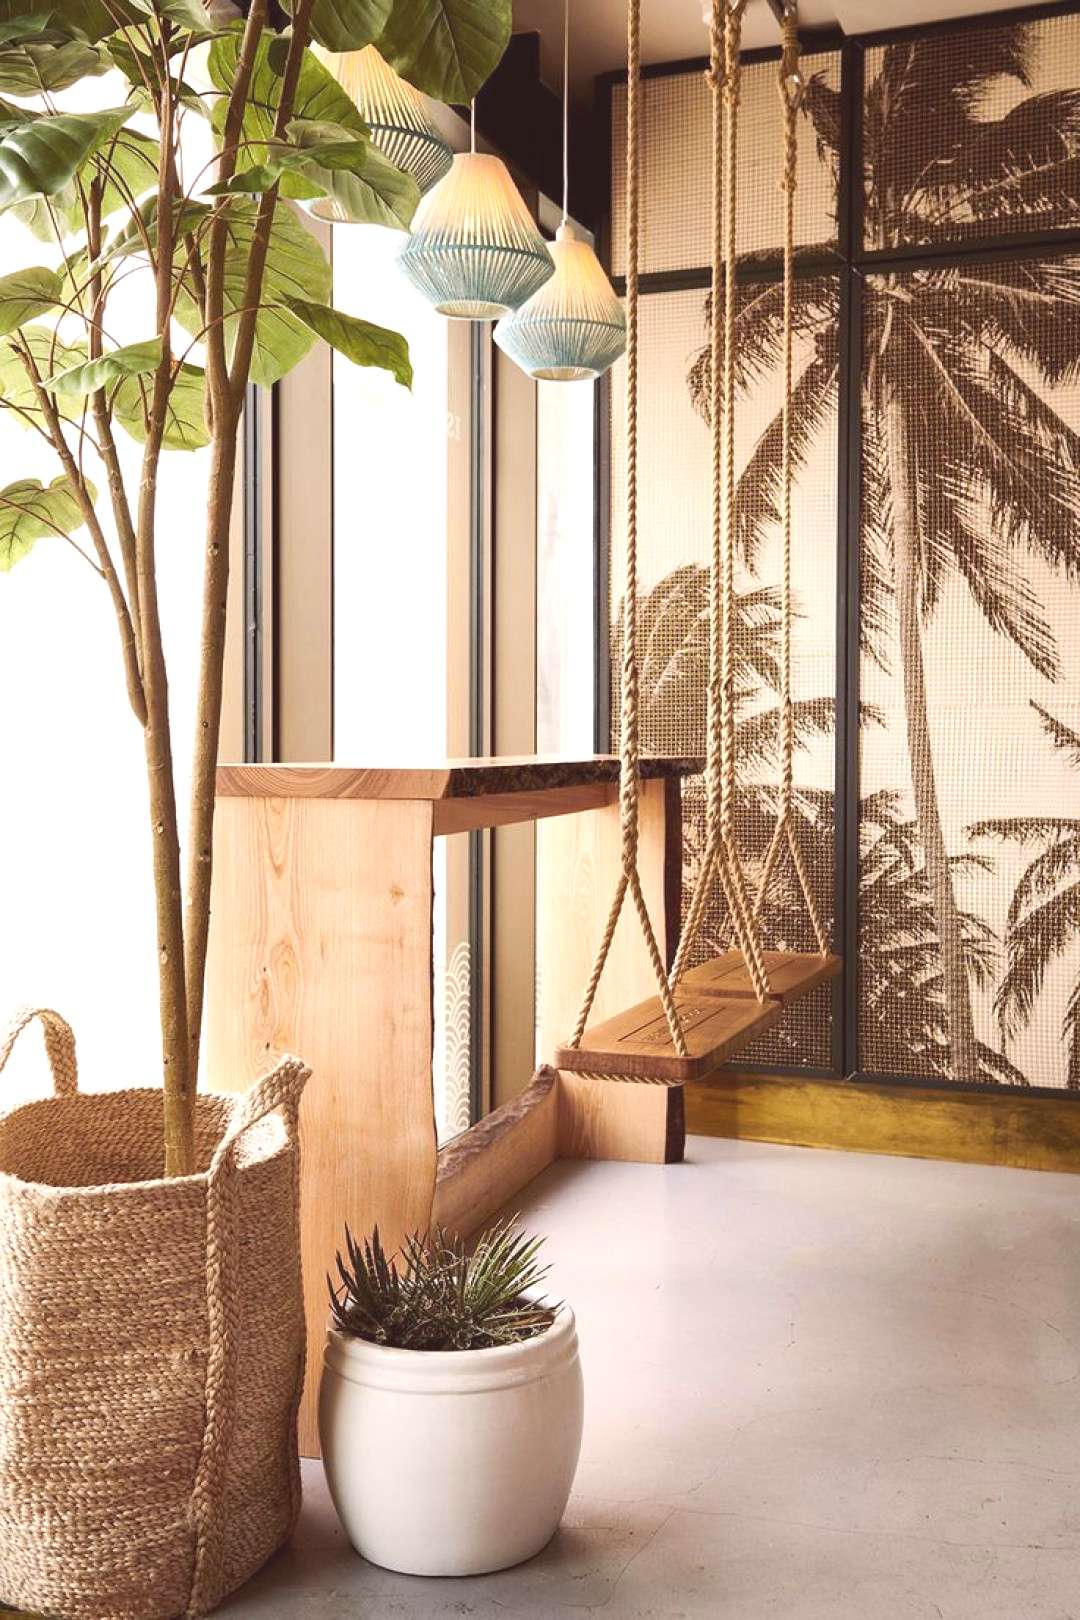 Terrace house design ideas, inspiration amp pictures │homify Interior design and graphics for Hawai